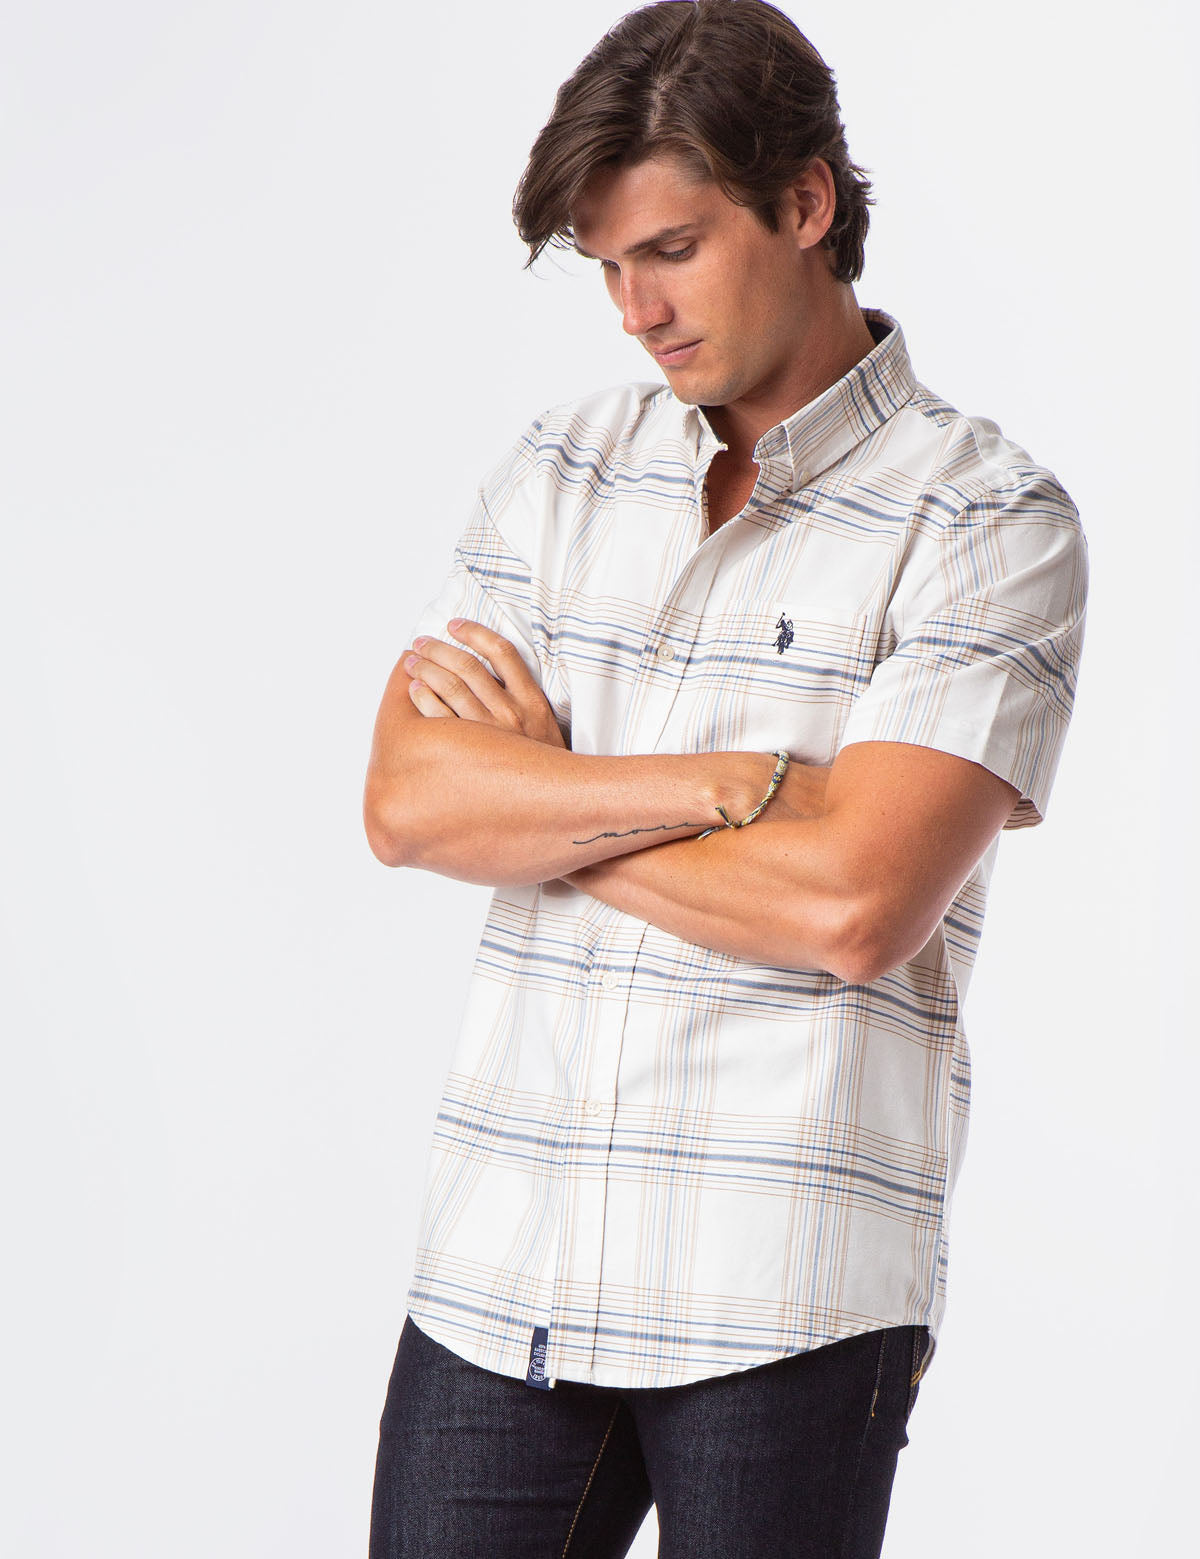 PLAID SHORT SLEEVE OXFORD SHIRT - U.S. Polo Assn.